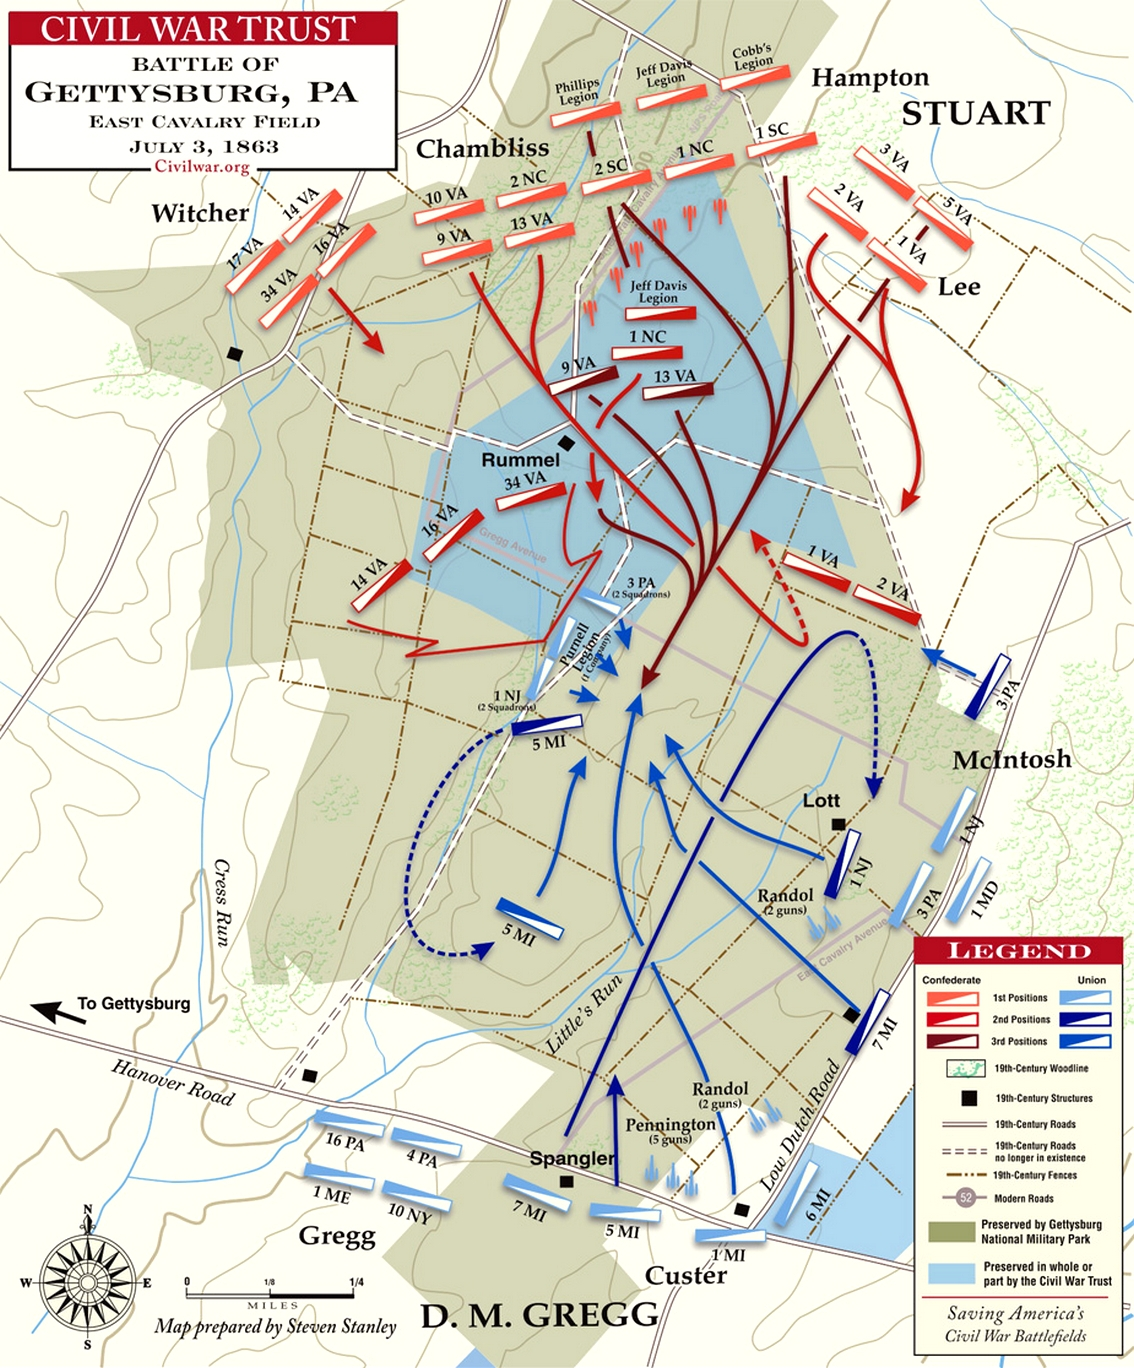 idees maison map of battle of gettysburg idees maison